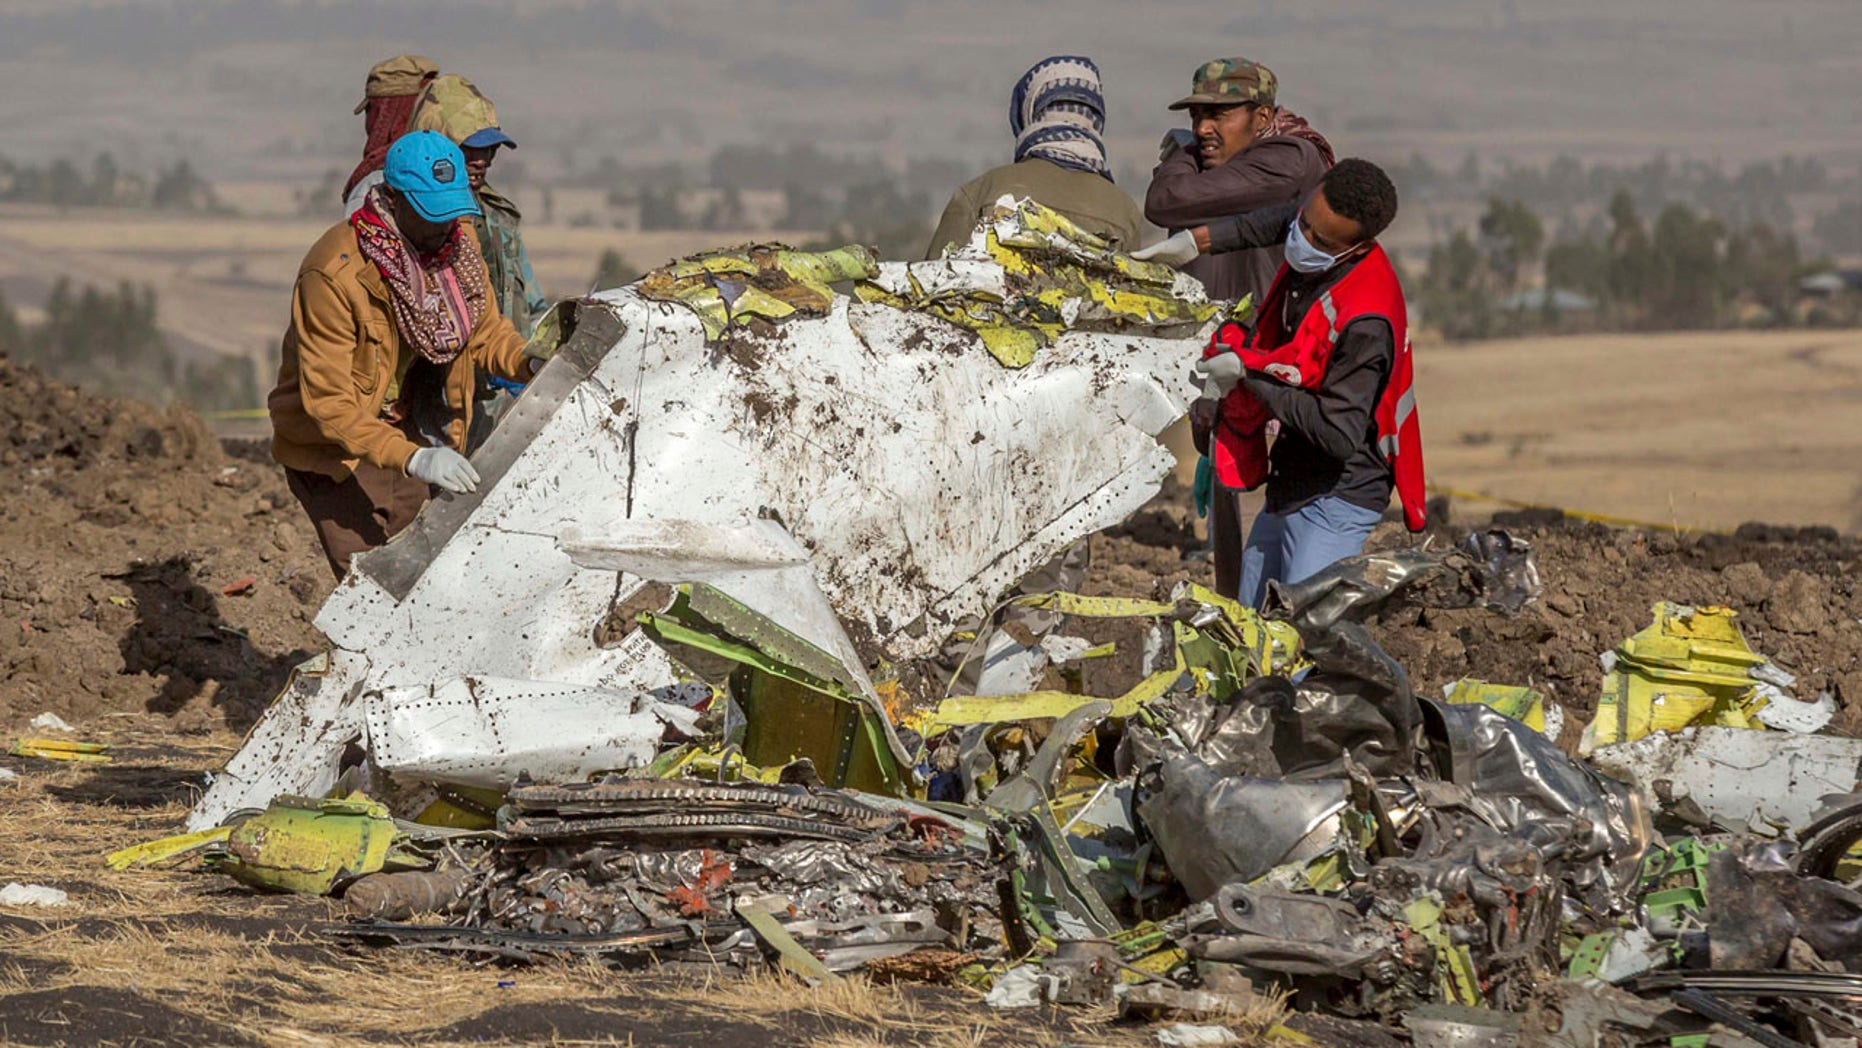 Ethiopian Airlines black boxes show similarities to Lion Air crash - ministry